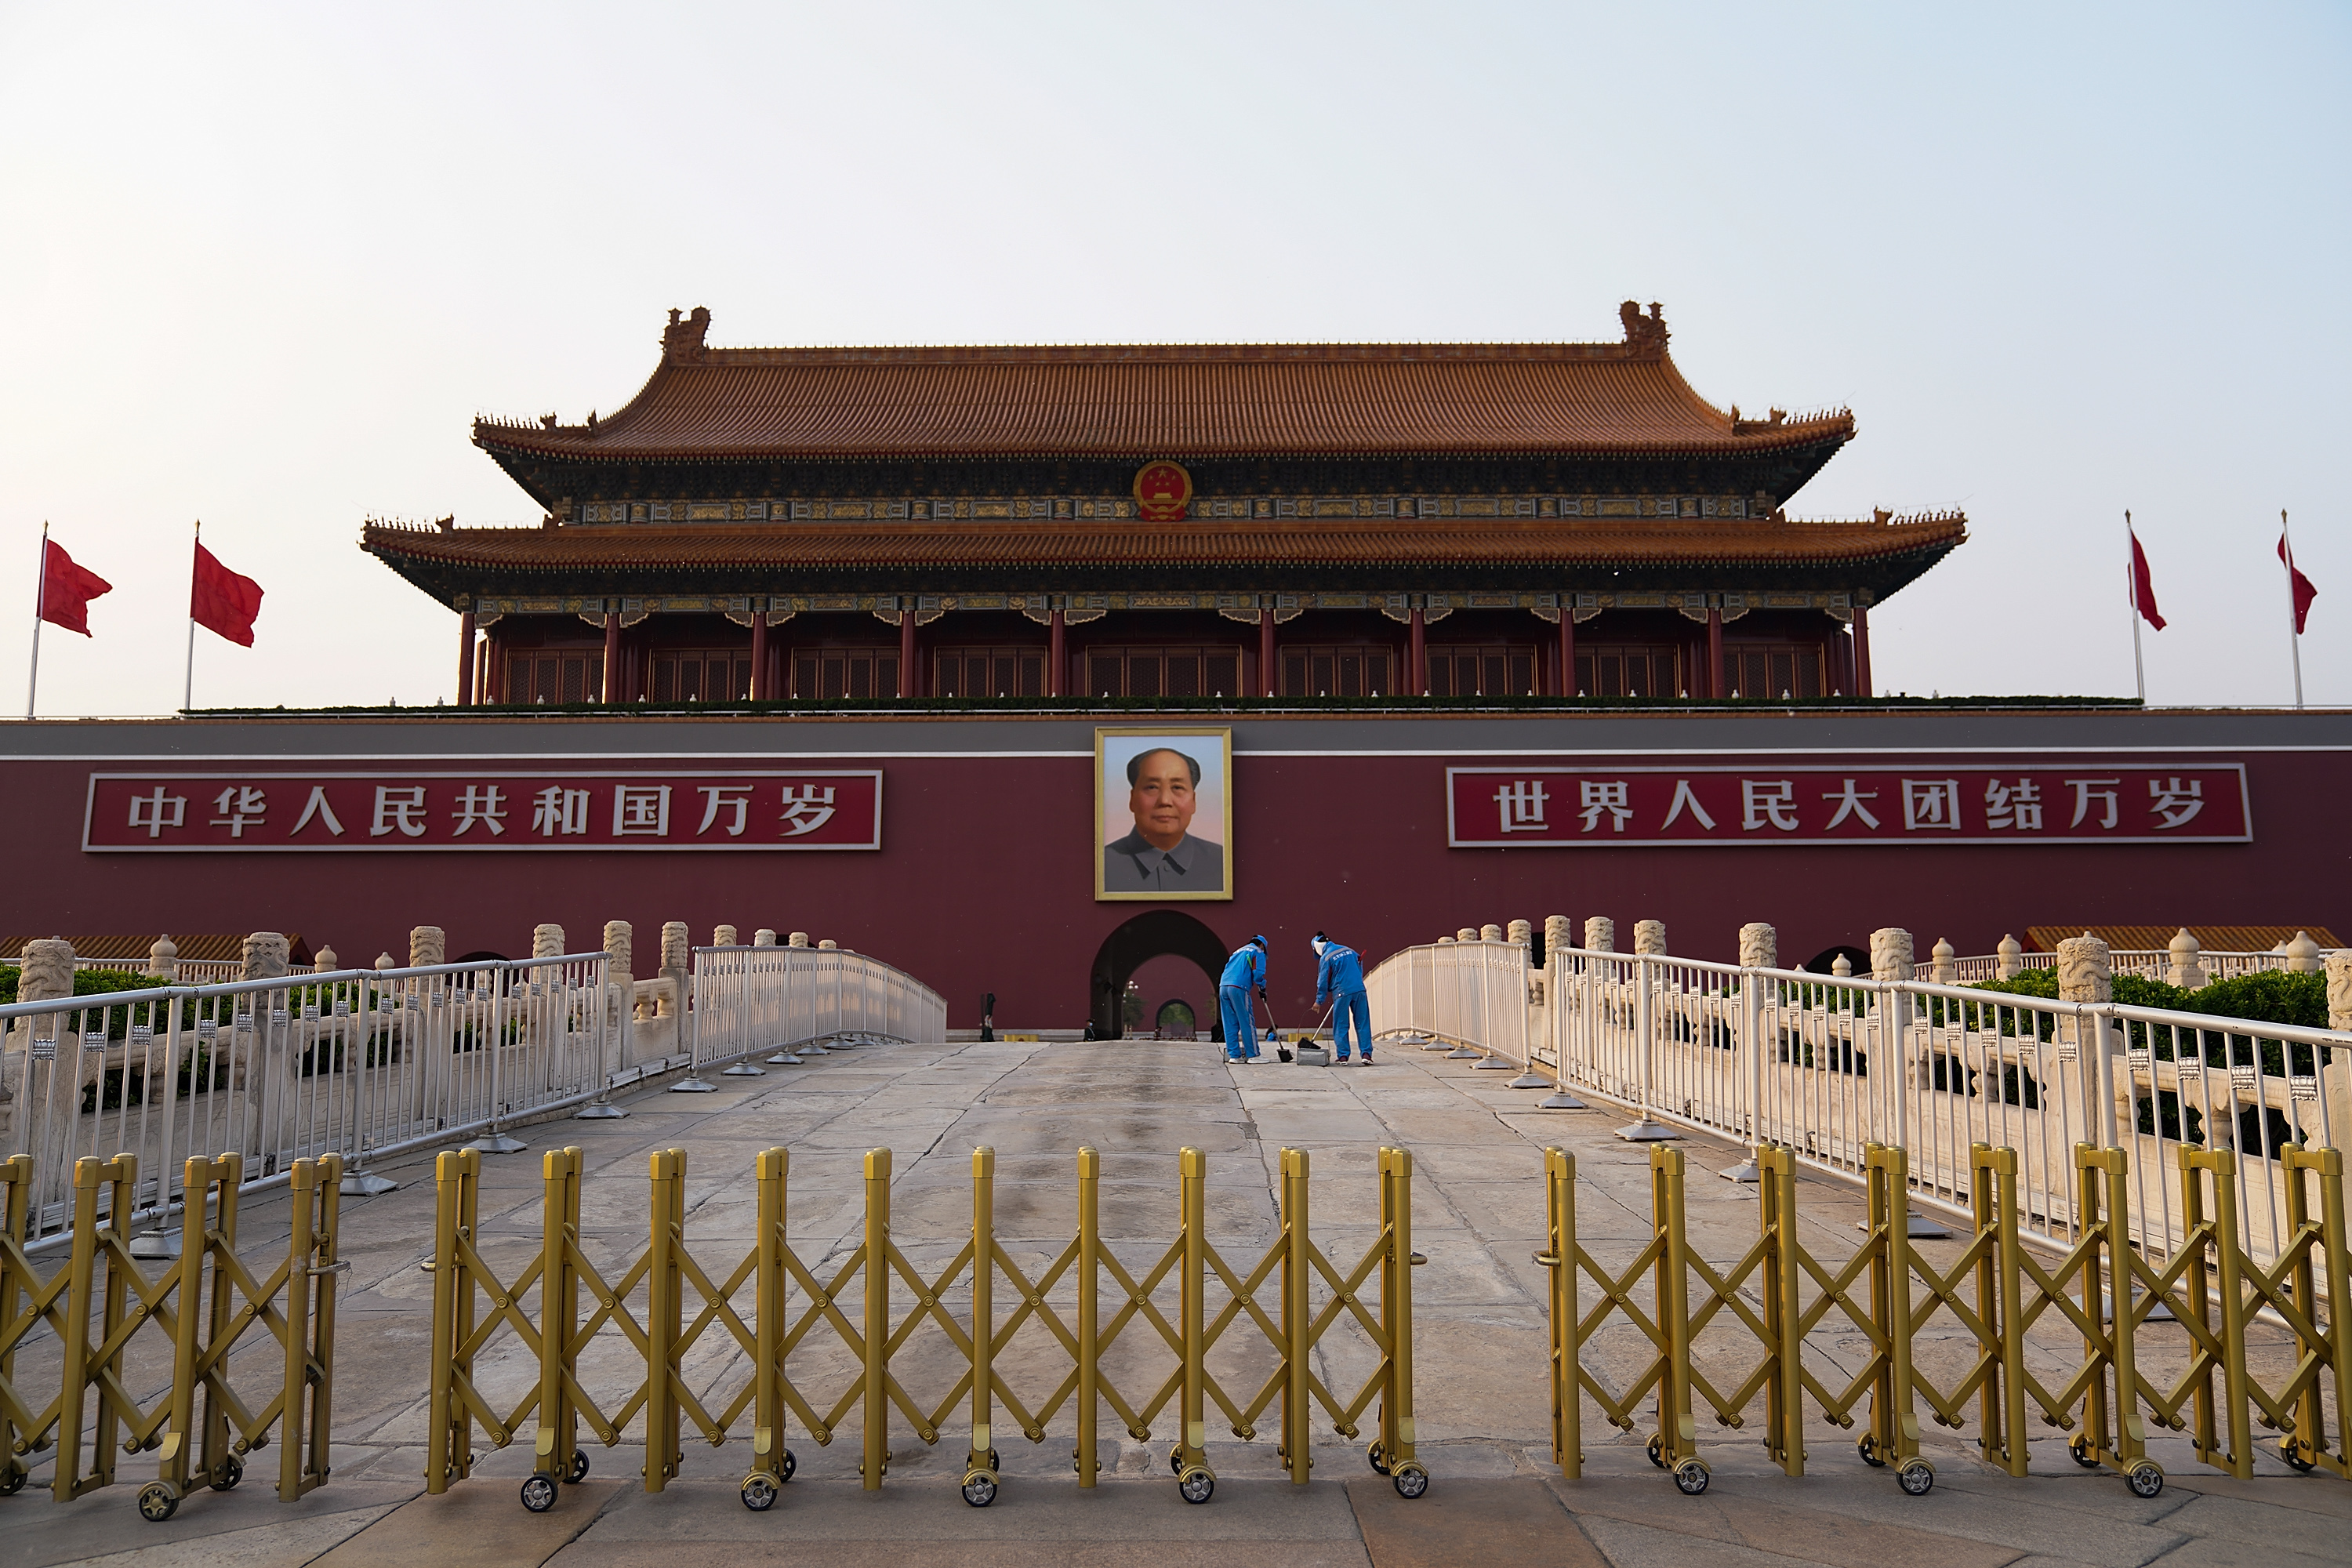 Two cleaners clean the ground in front of the portrait of the late Communist Party leader Mao Zedong on April 29, 2020 in Beijing, China. (Photo by Lintao Zhang/Getty Images)